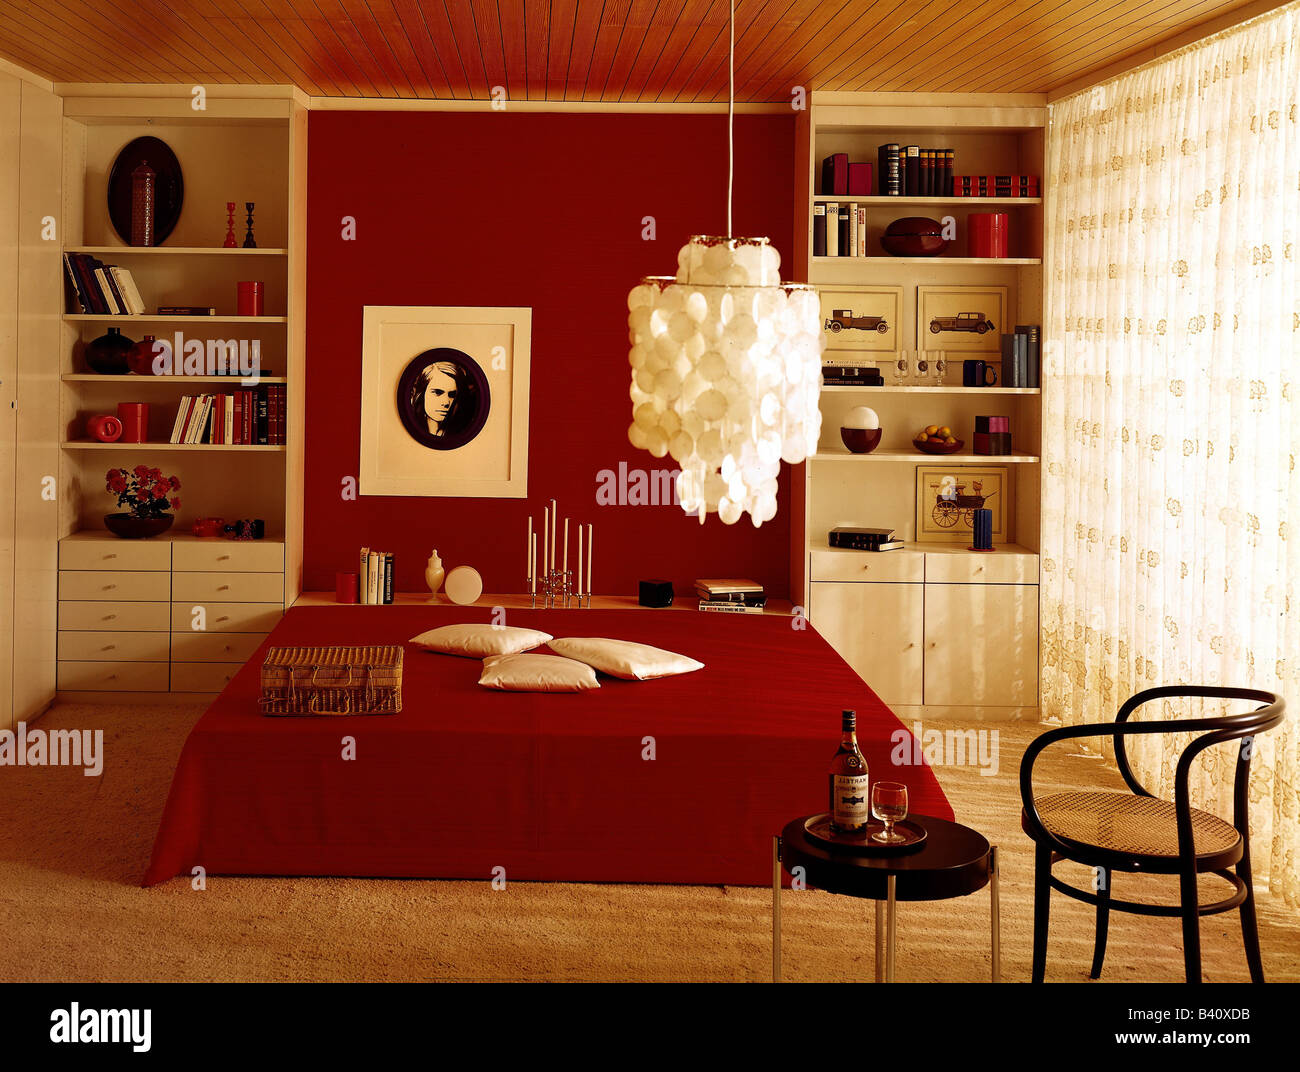 Chambre A Coucher Annees 70 1970s bedroom photos & 1970s bedroom images - alamy